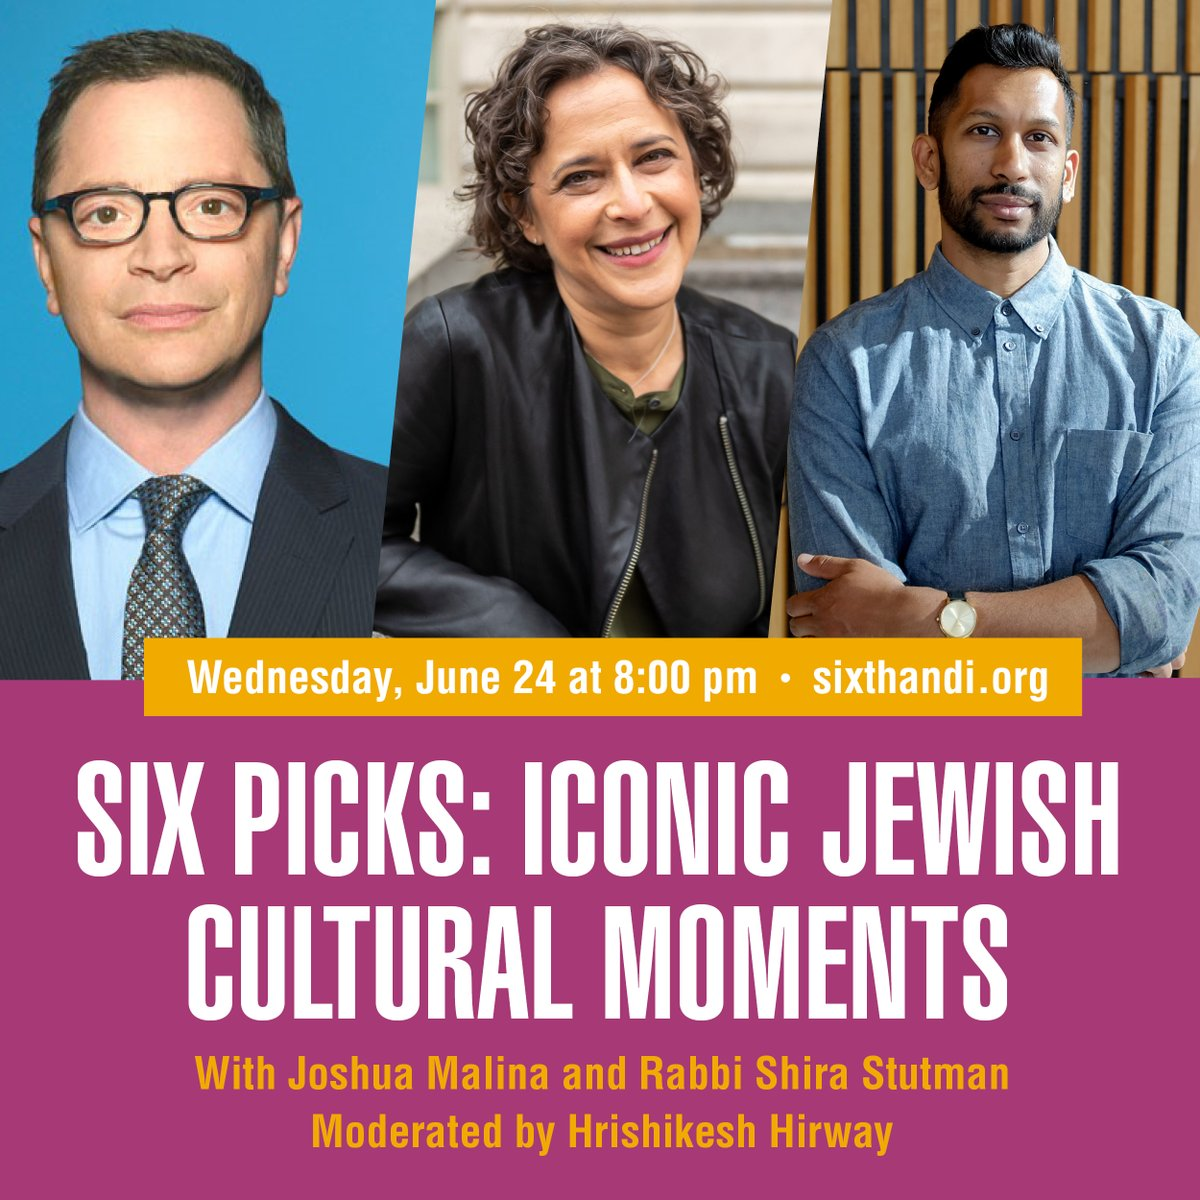 Whats next? @JoshMalina and @rabbishira share some of their all-time favorite Jewish moments across film, TV, books, and plays TONIGHT at 8:00 pm EST in conversation with @SongExploder and @WestWingWeekly host @HrishiHirway. RSVP: ow.ly/dJ4W30qT7XK